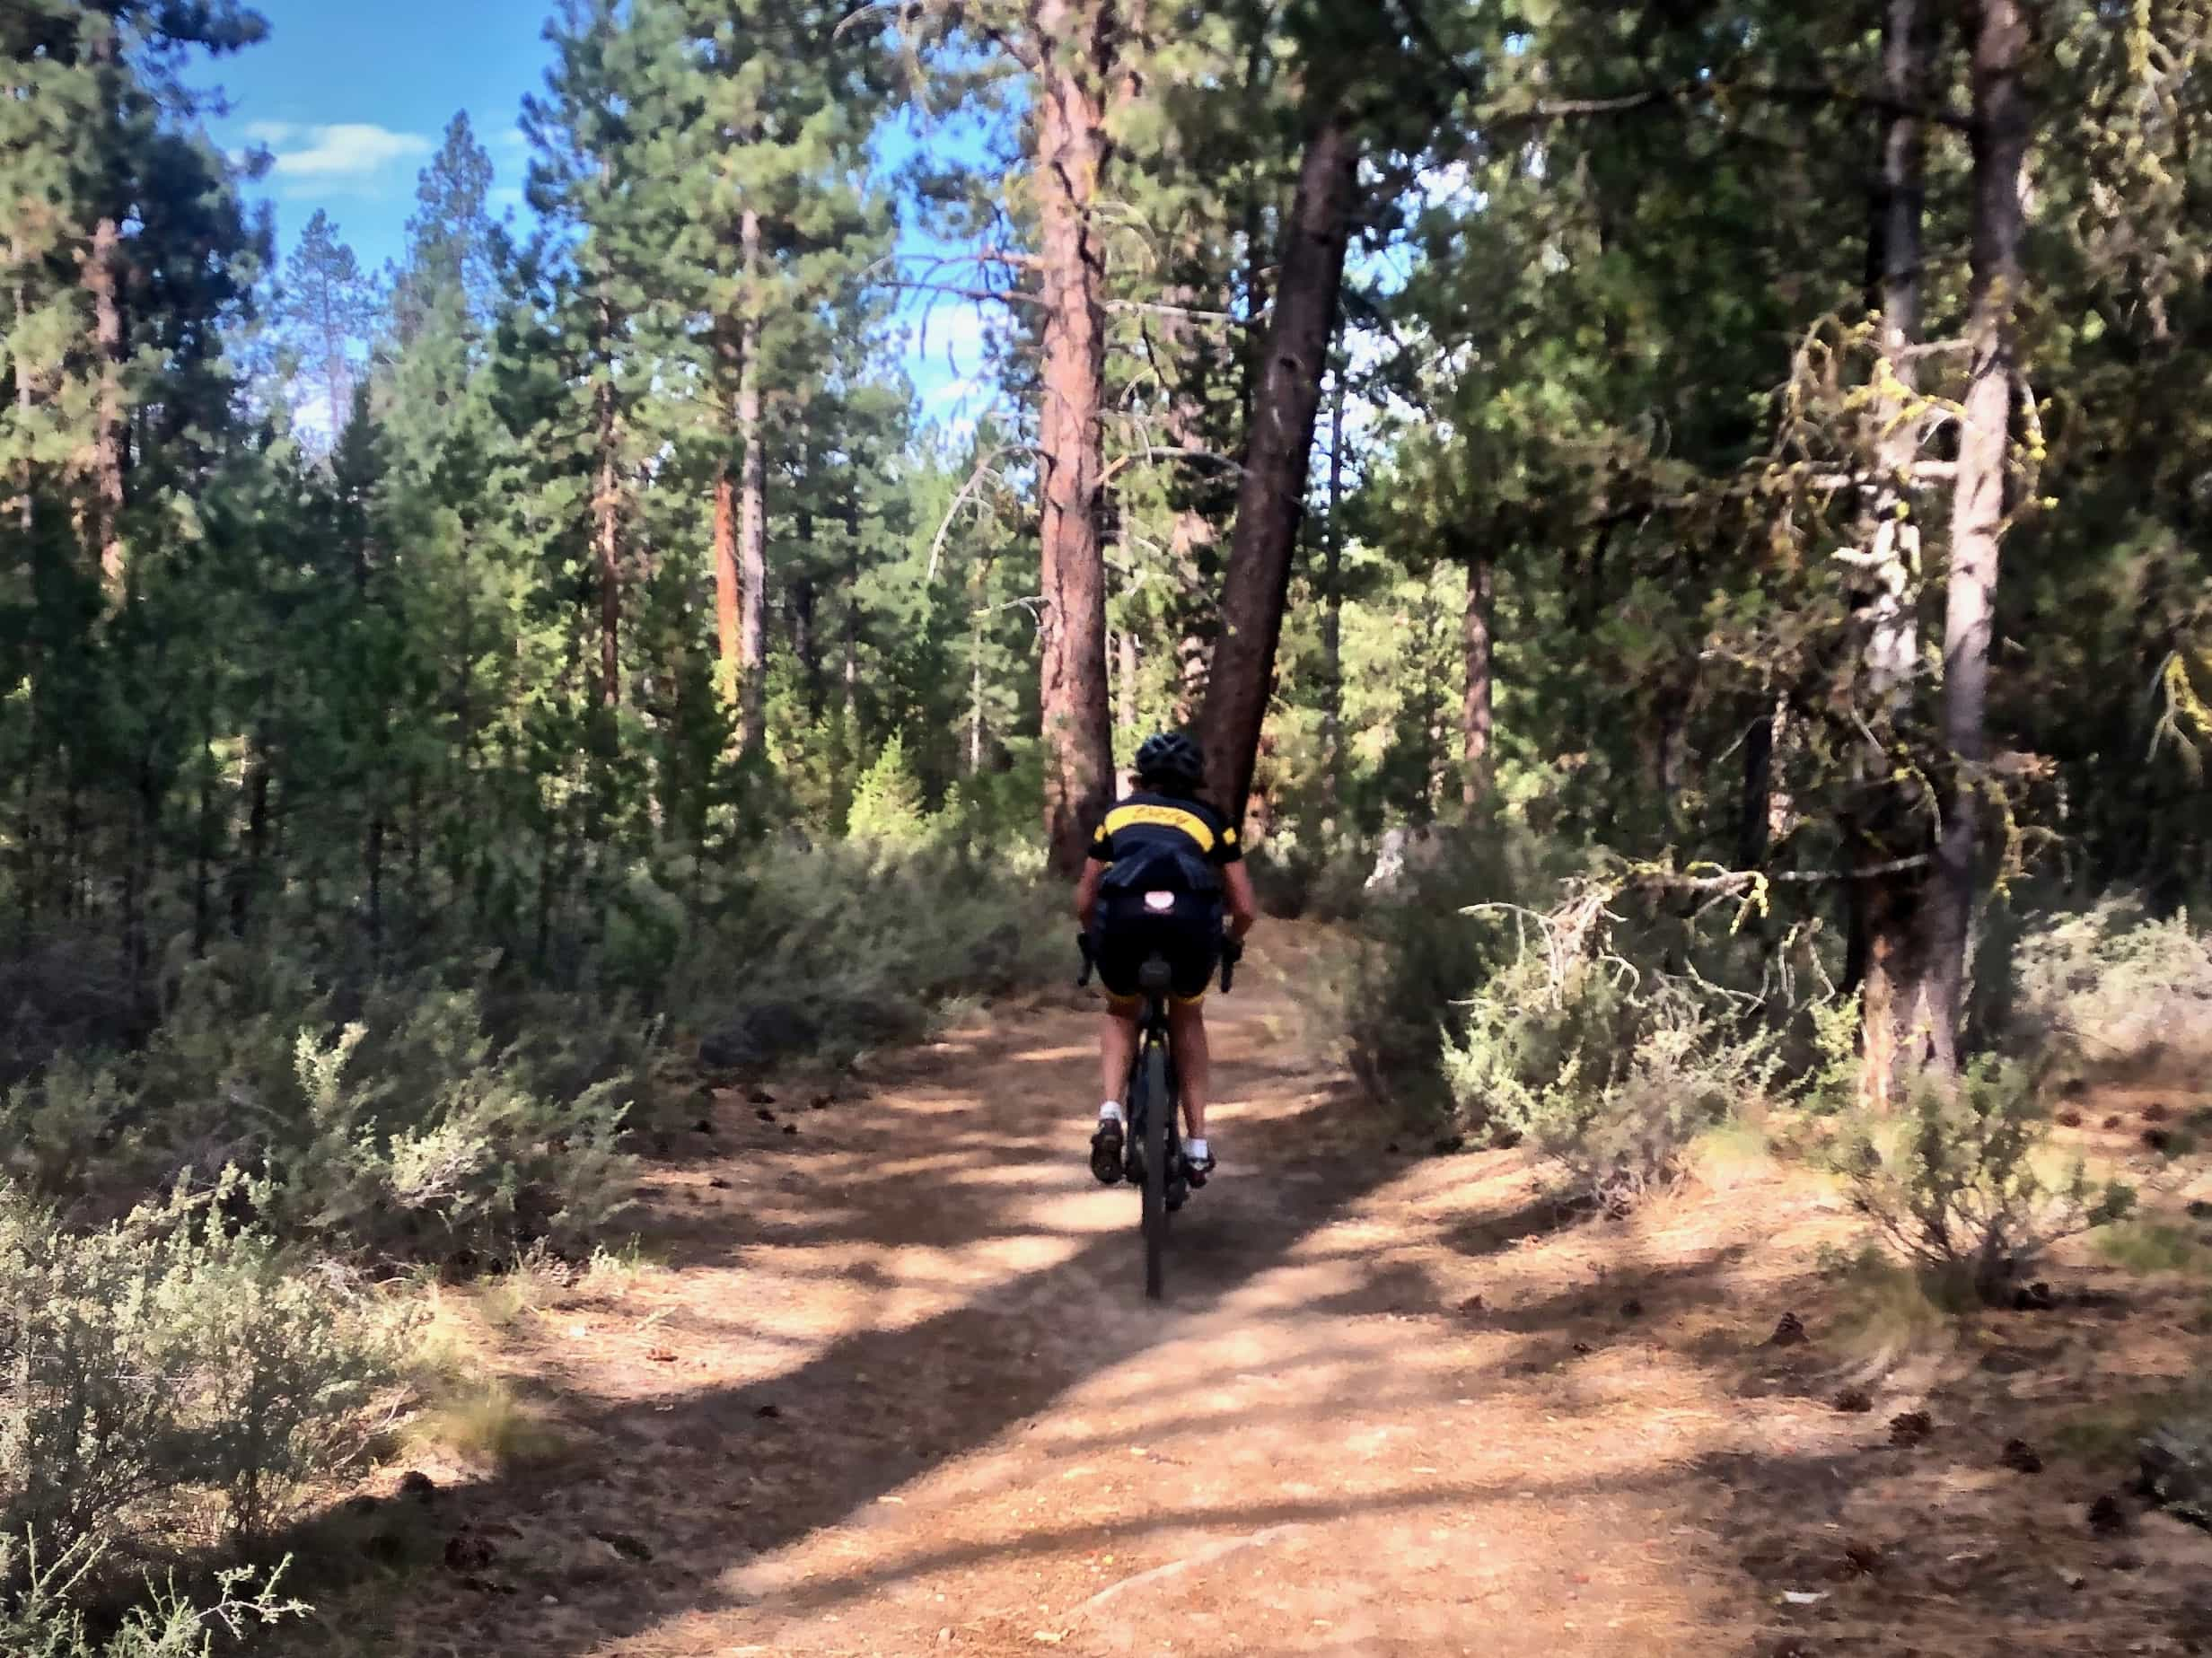 Gravel cyclist on dirt trail in LaPine State Park, Oregon.